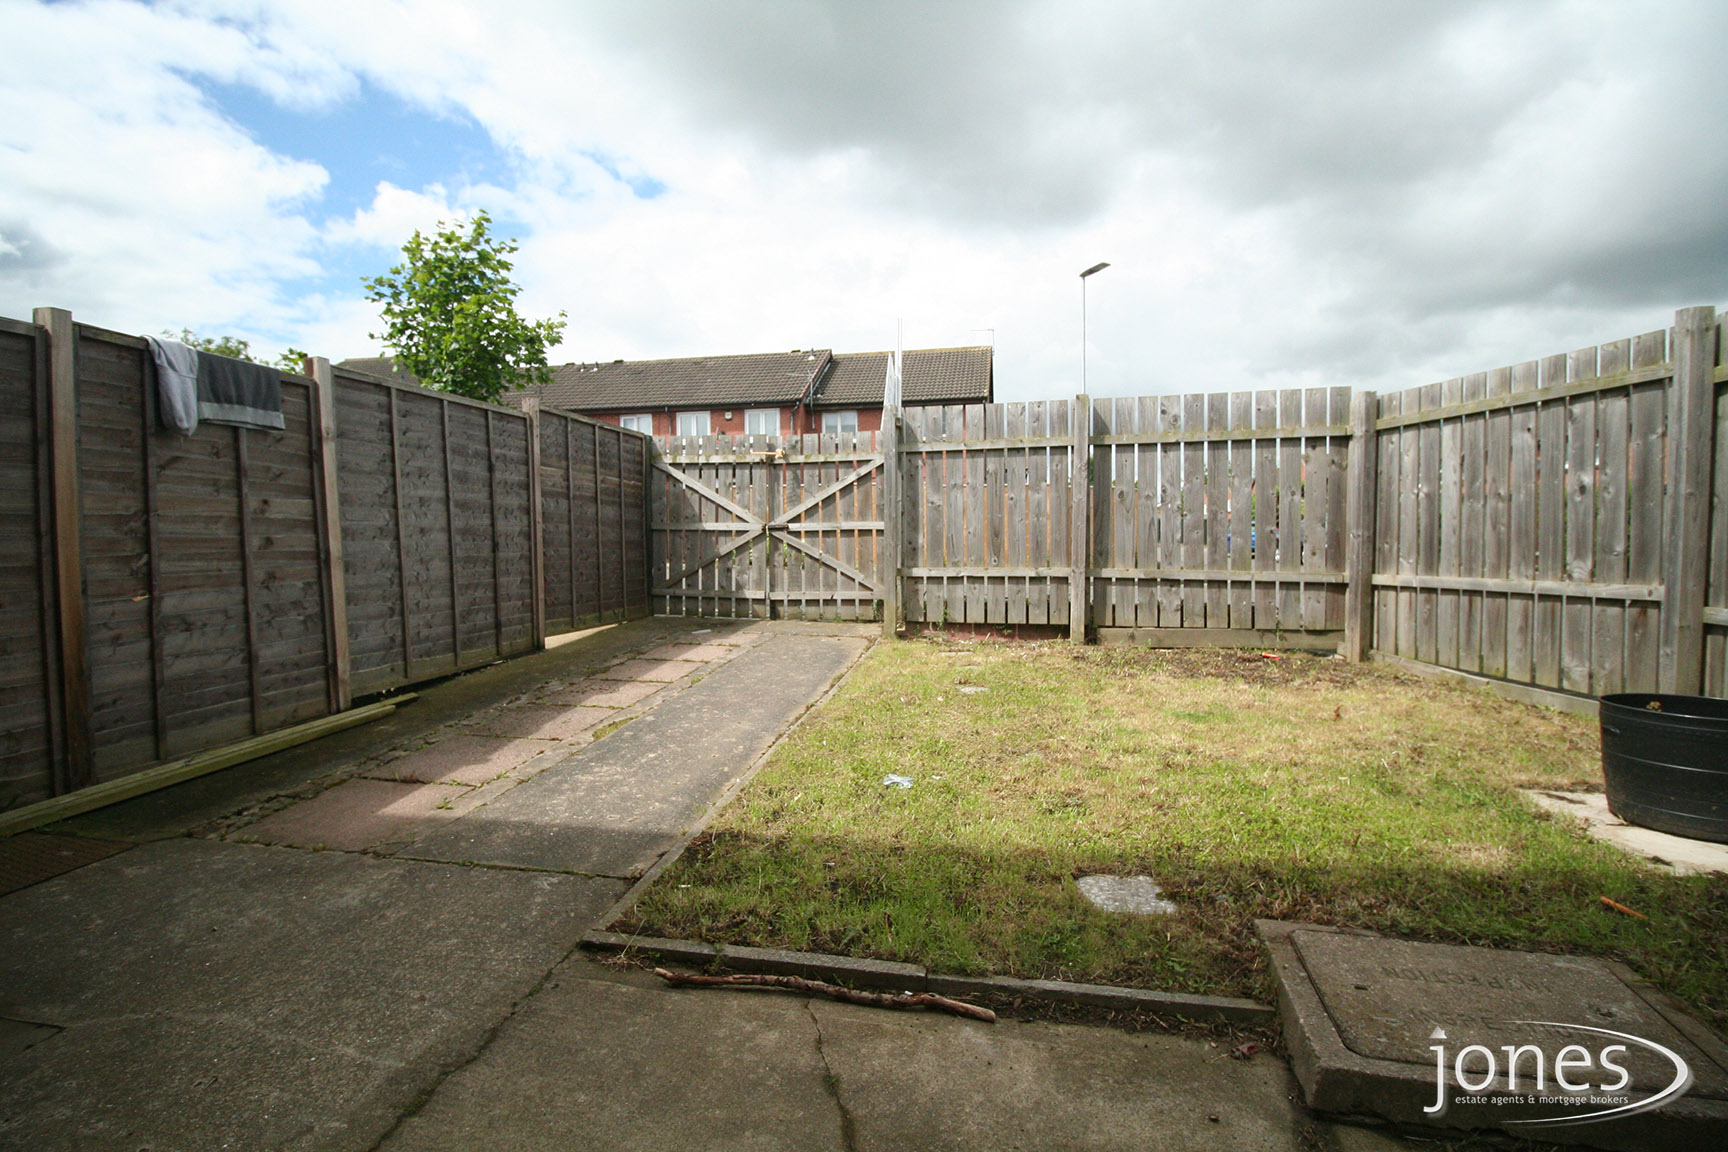 Home for Sale Let - Photo 09 Francis Walk,  Thornaby, TS17 6DL